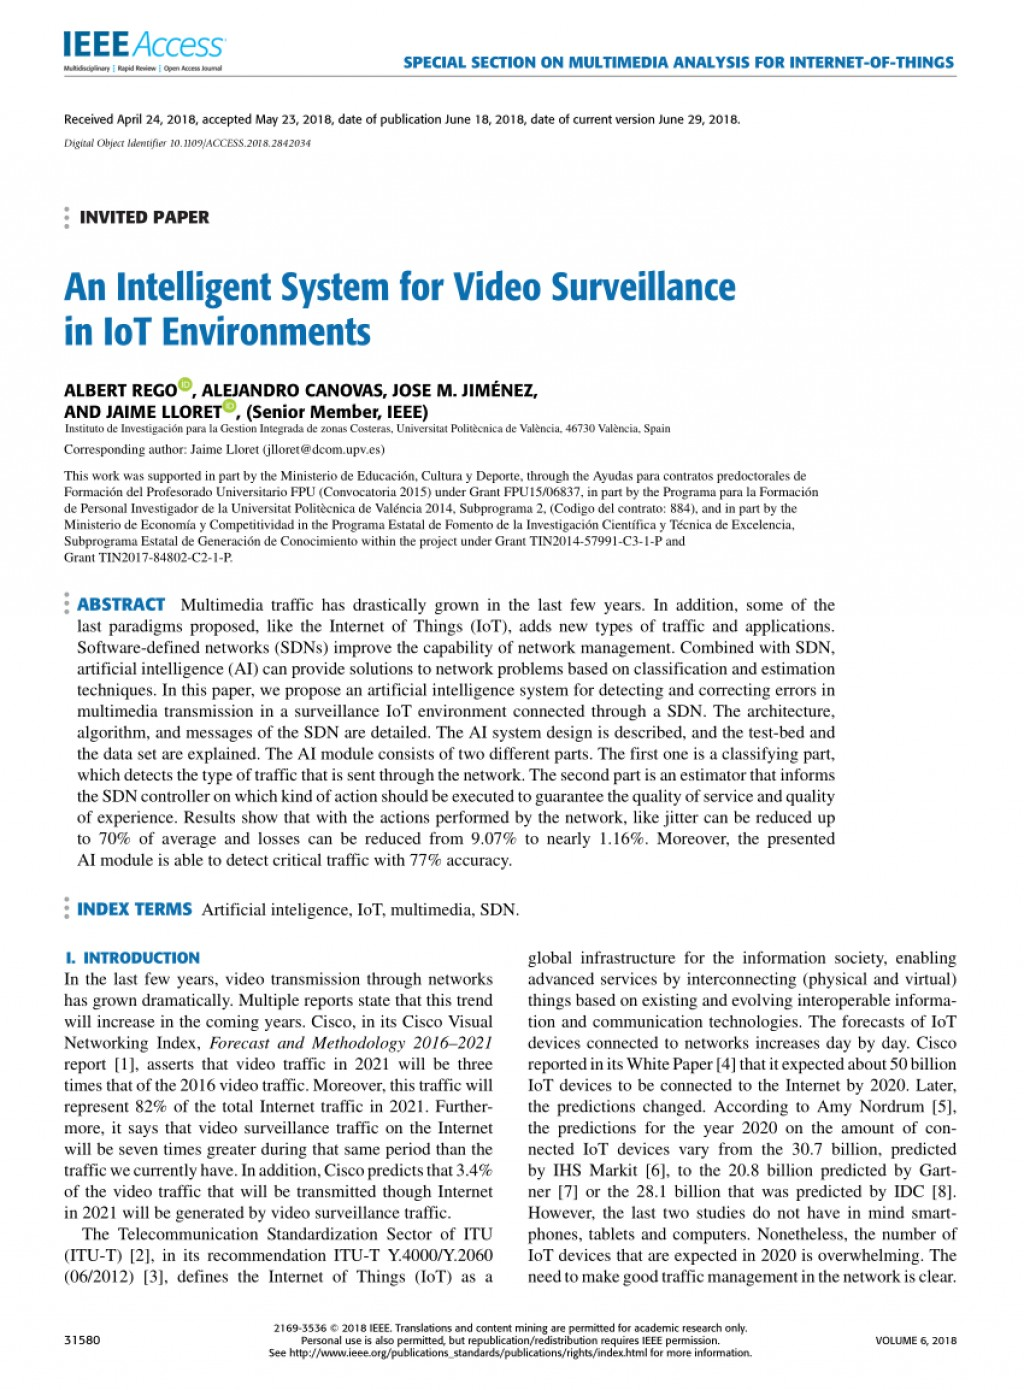 002 Latest Ieee Research Papers On Artificial Intelligence Paper Unforgettable Pdf Large